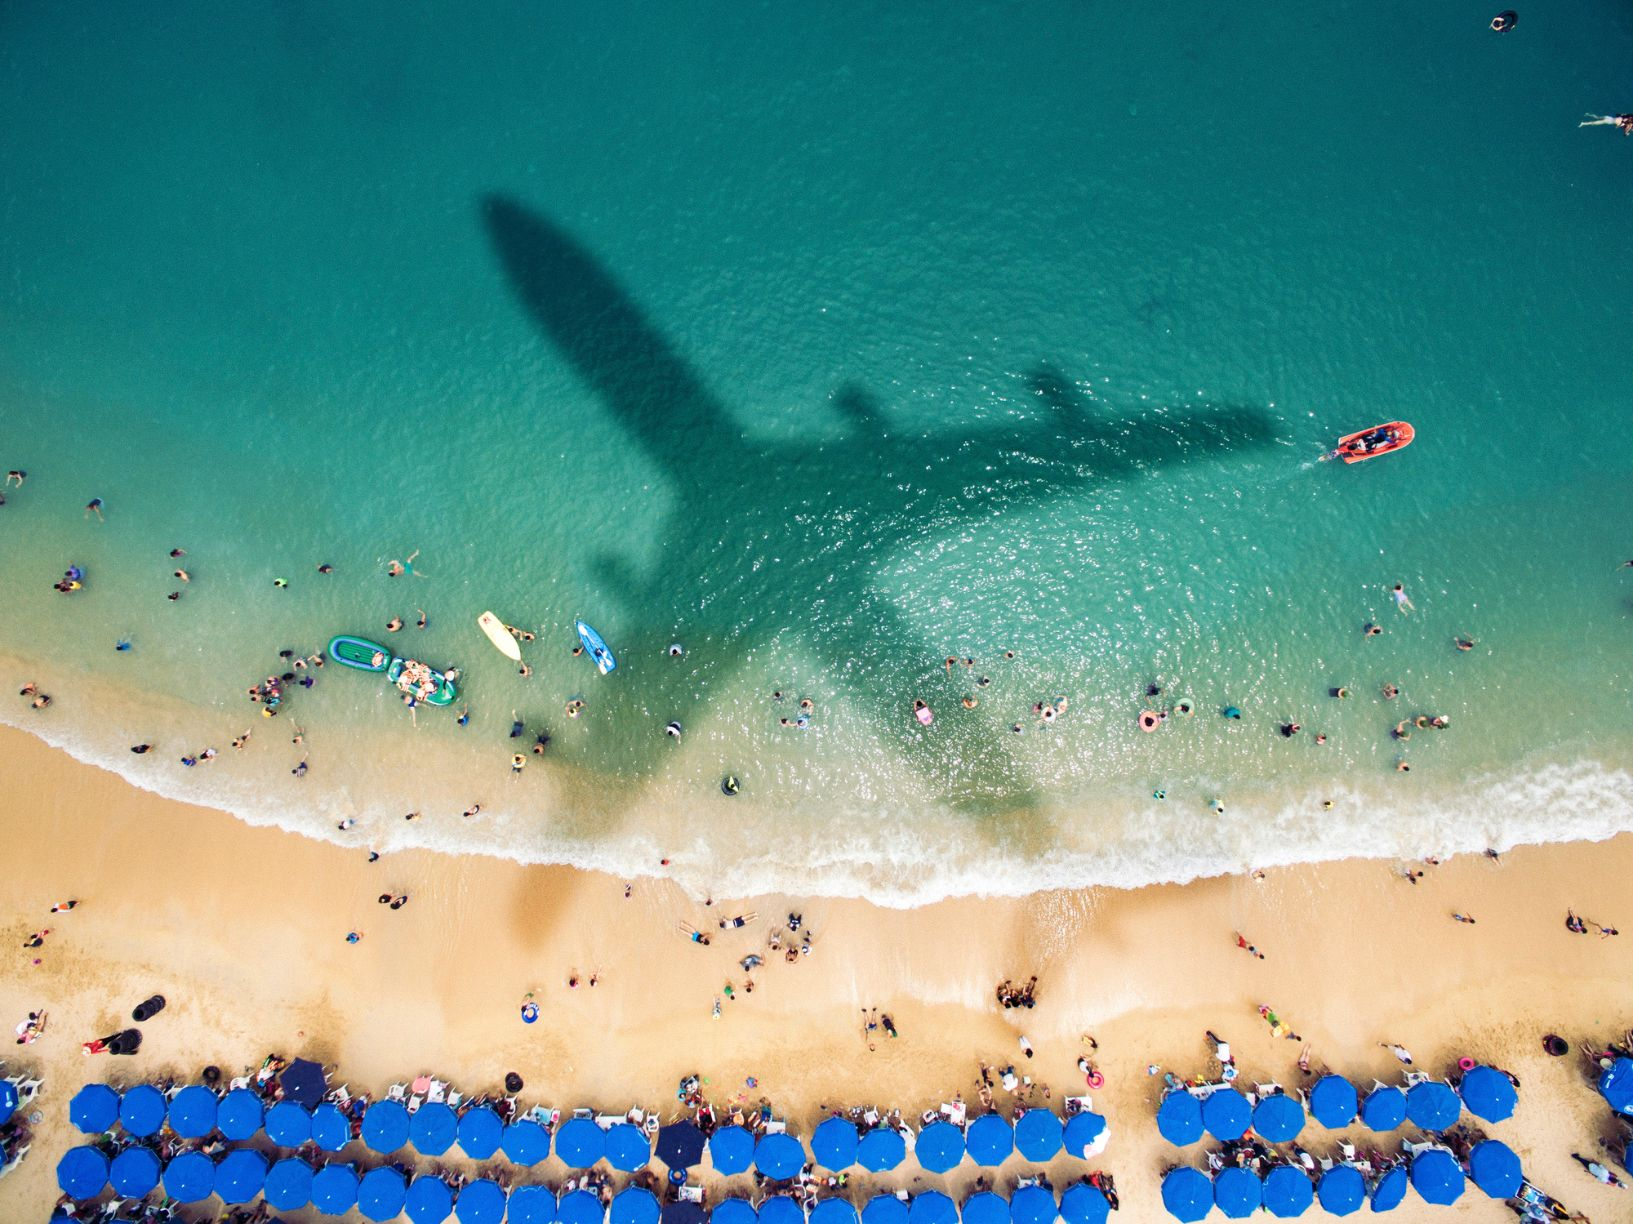 airplane-s-shadow-over-a-crowded-beachjpg